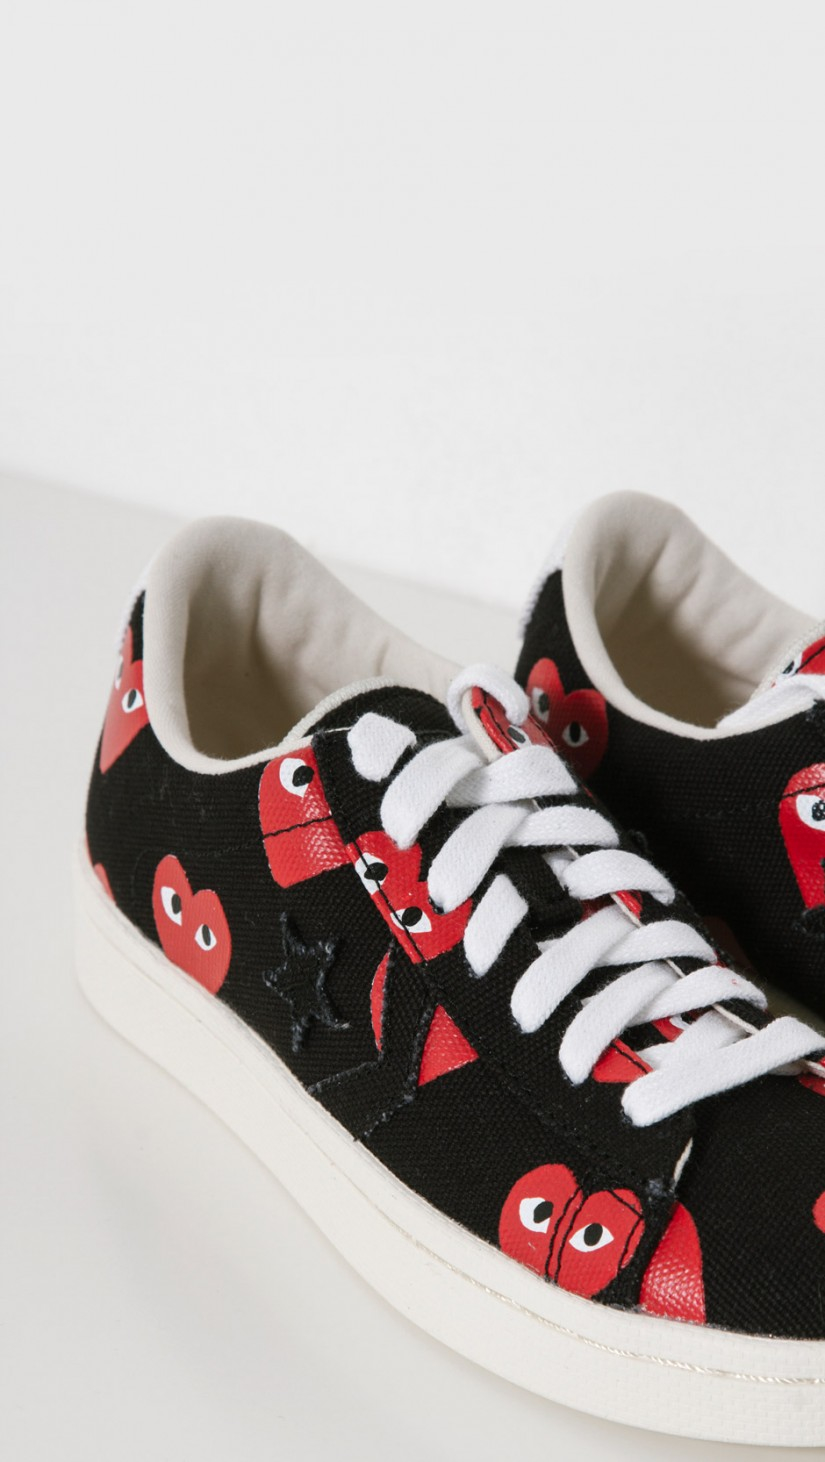 3a90c4337dbcec Play Comme des Garçons Play Converse Pro Leather Low in Black - Lyst